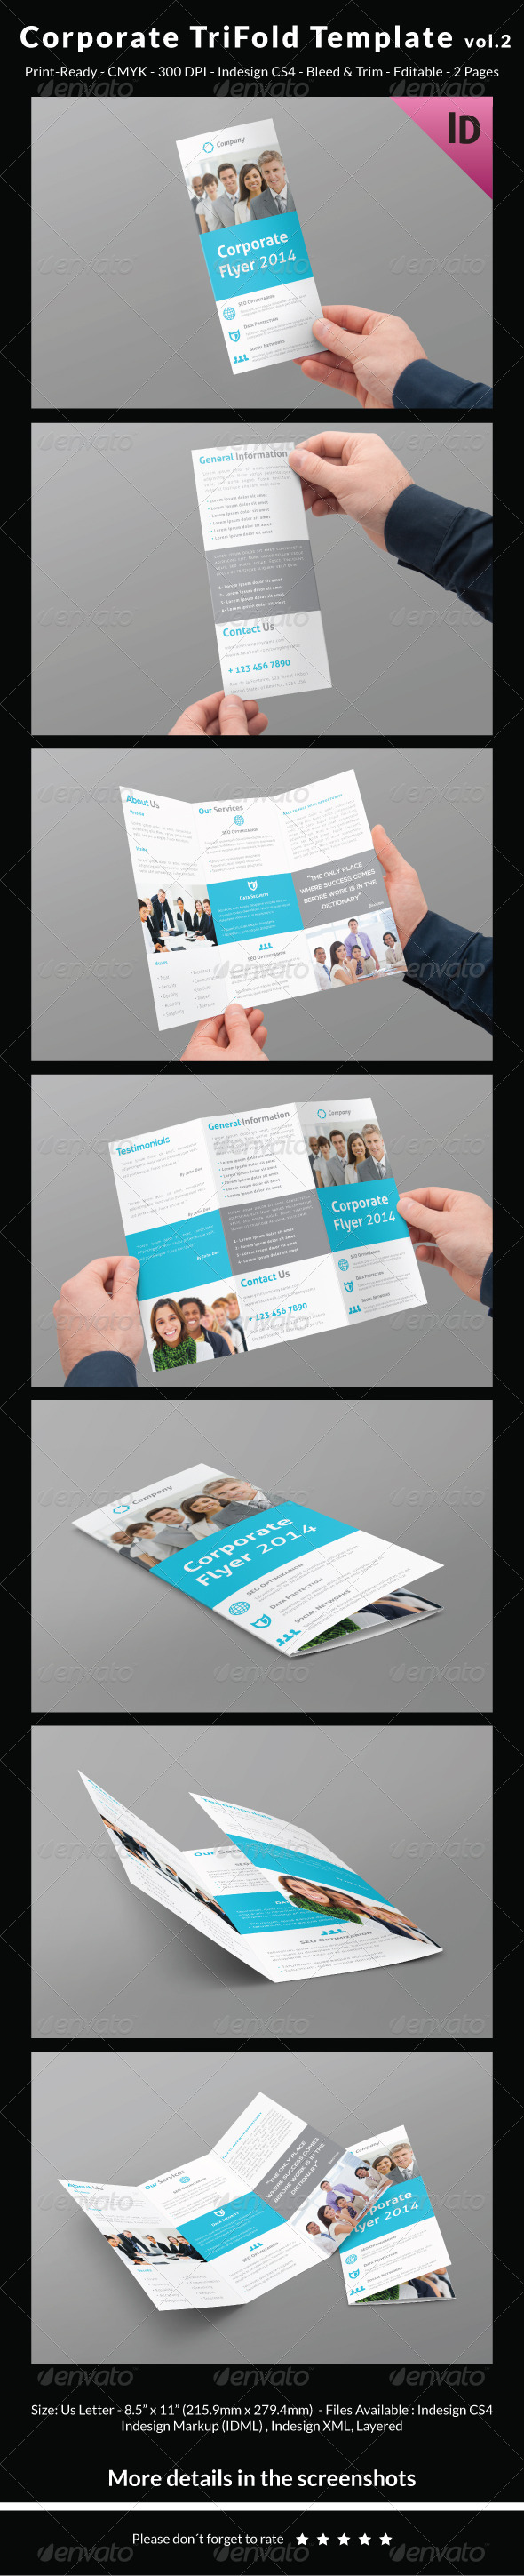 GraphicRiver Corporate Trifold Template vol.2 7011256